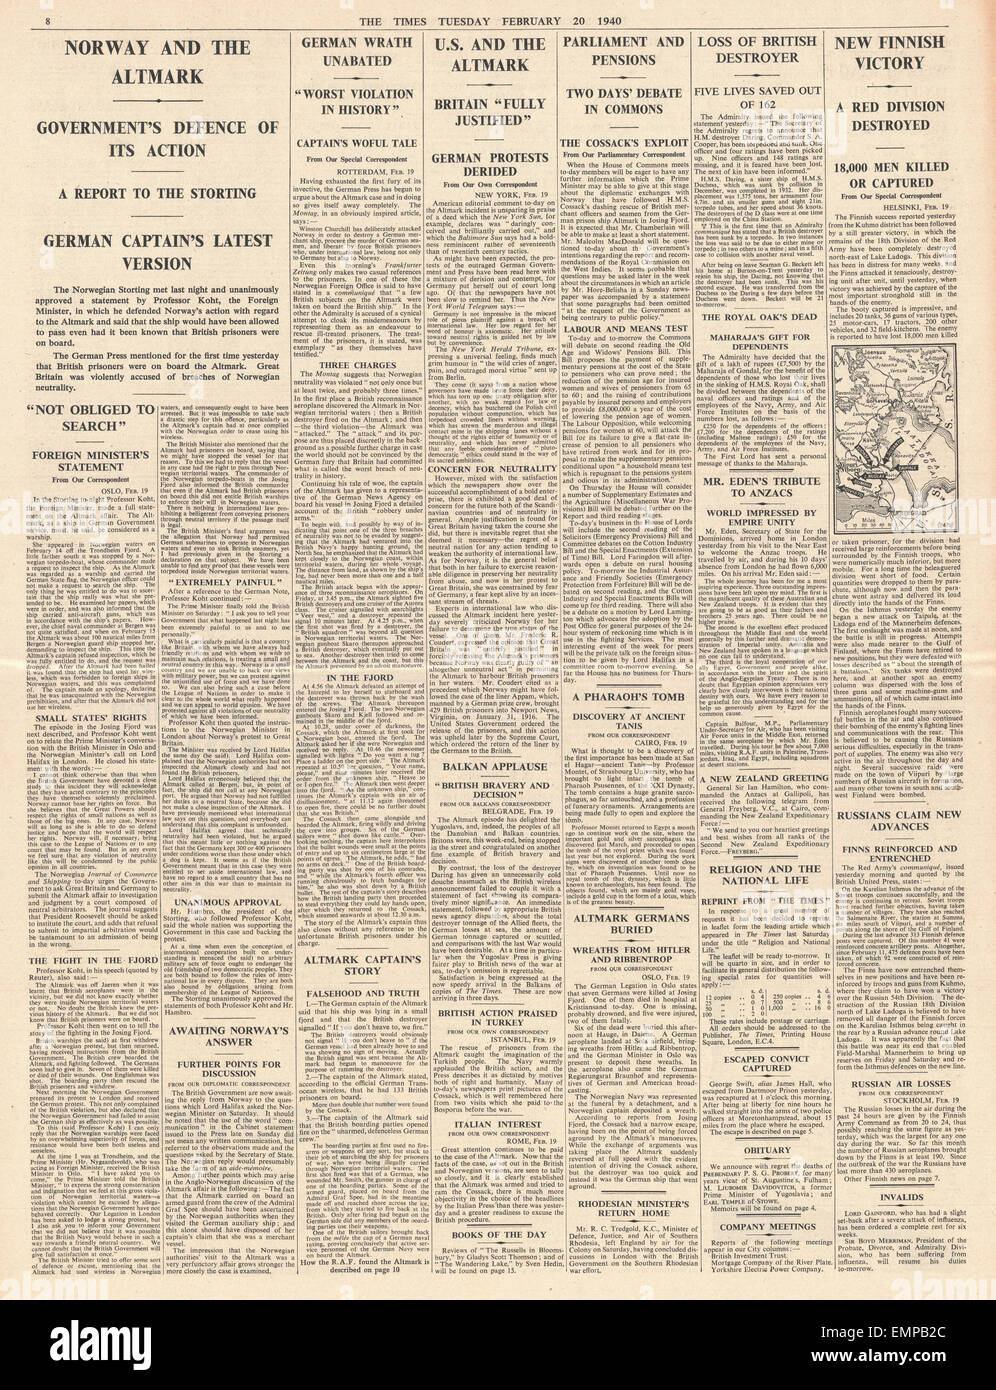 1940 The Times page 8 Norway may appeal to League of Nations over Altmark incident - Stock Image